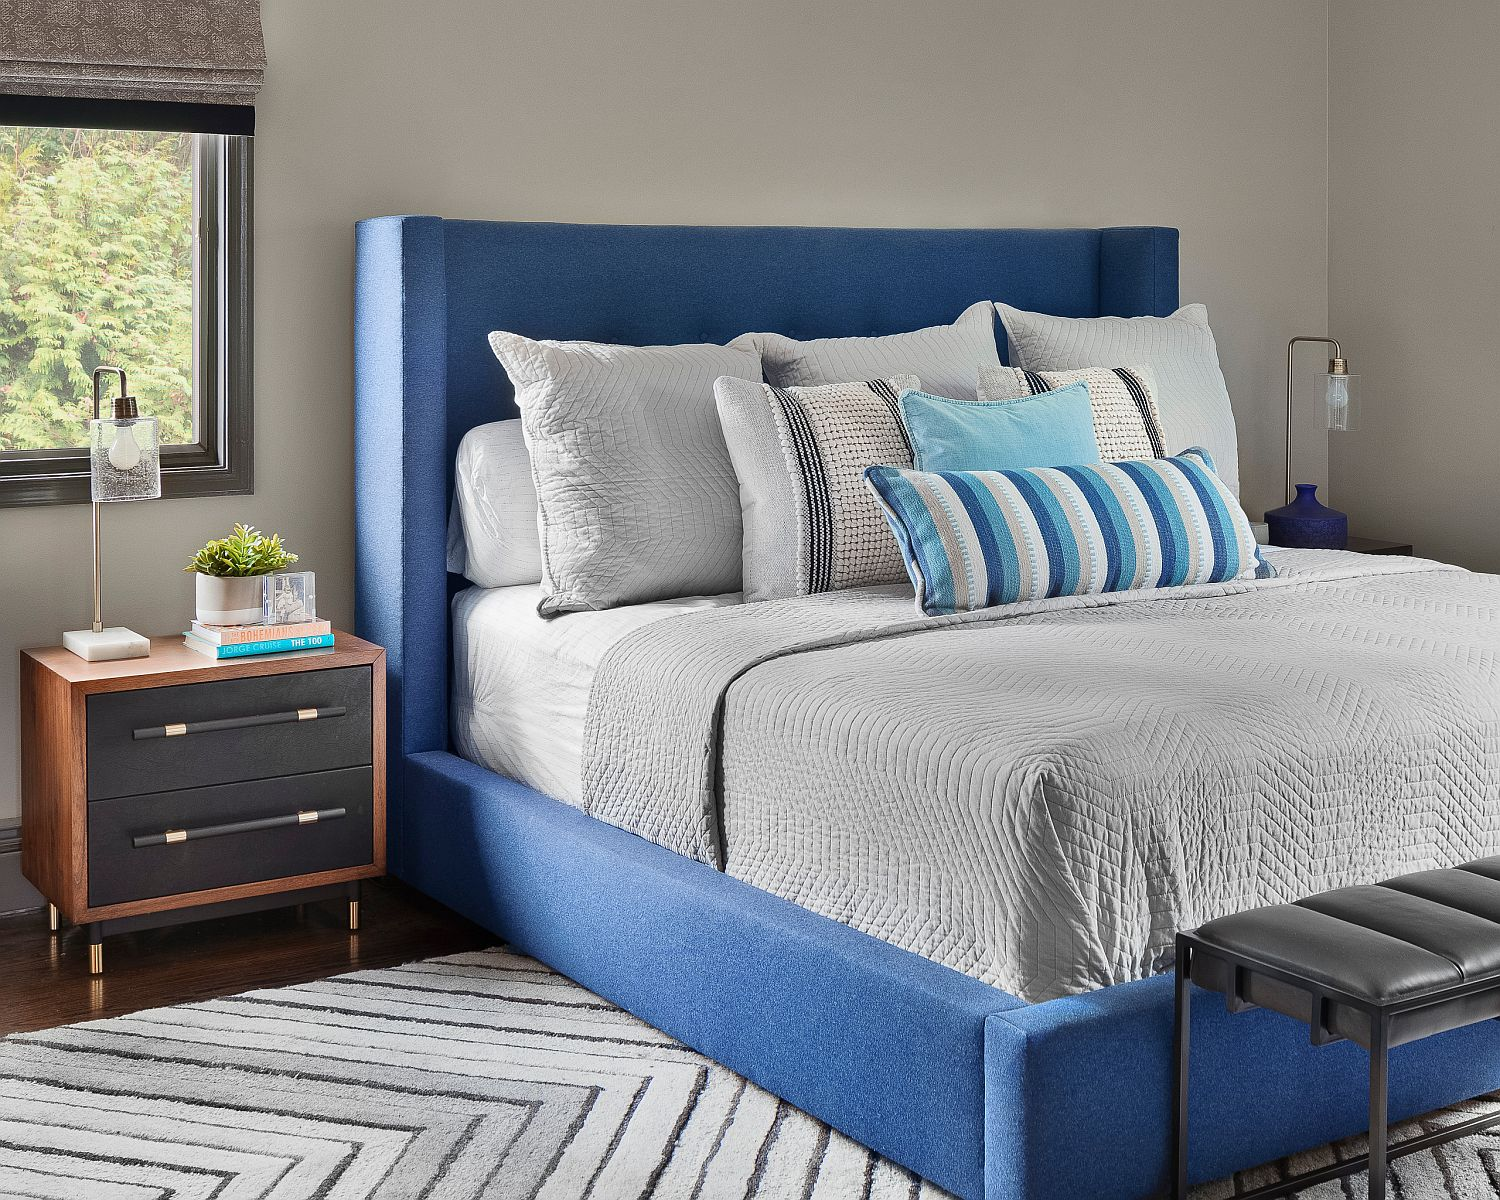 Bedside table and headboard usher in midcentury vibe into the modern bedroom with a dash of blue